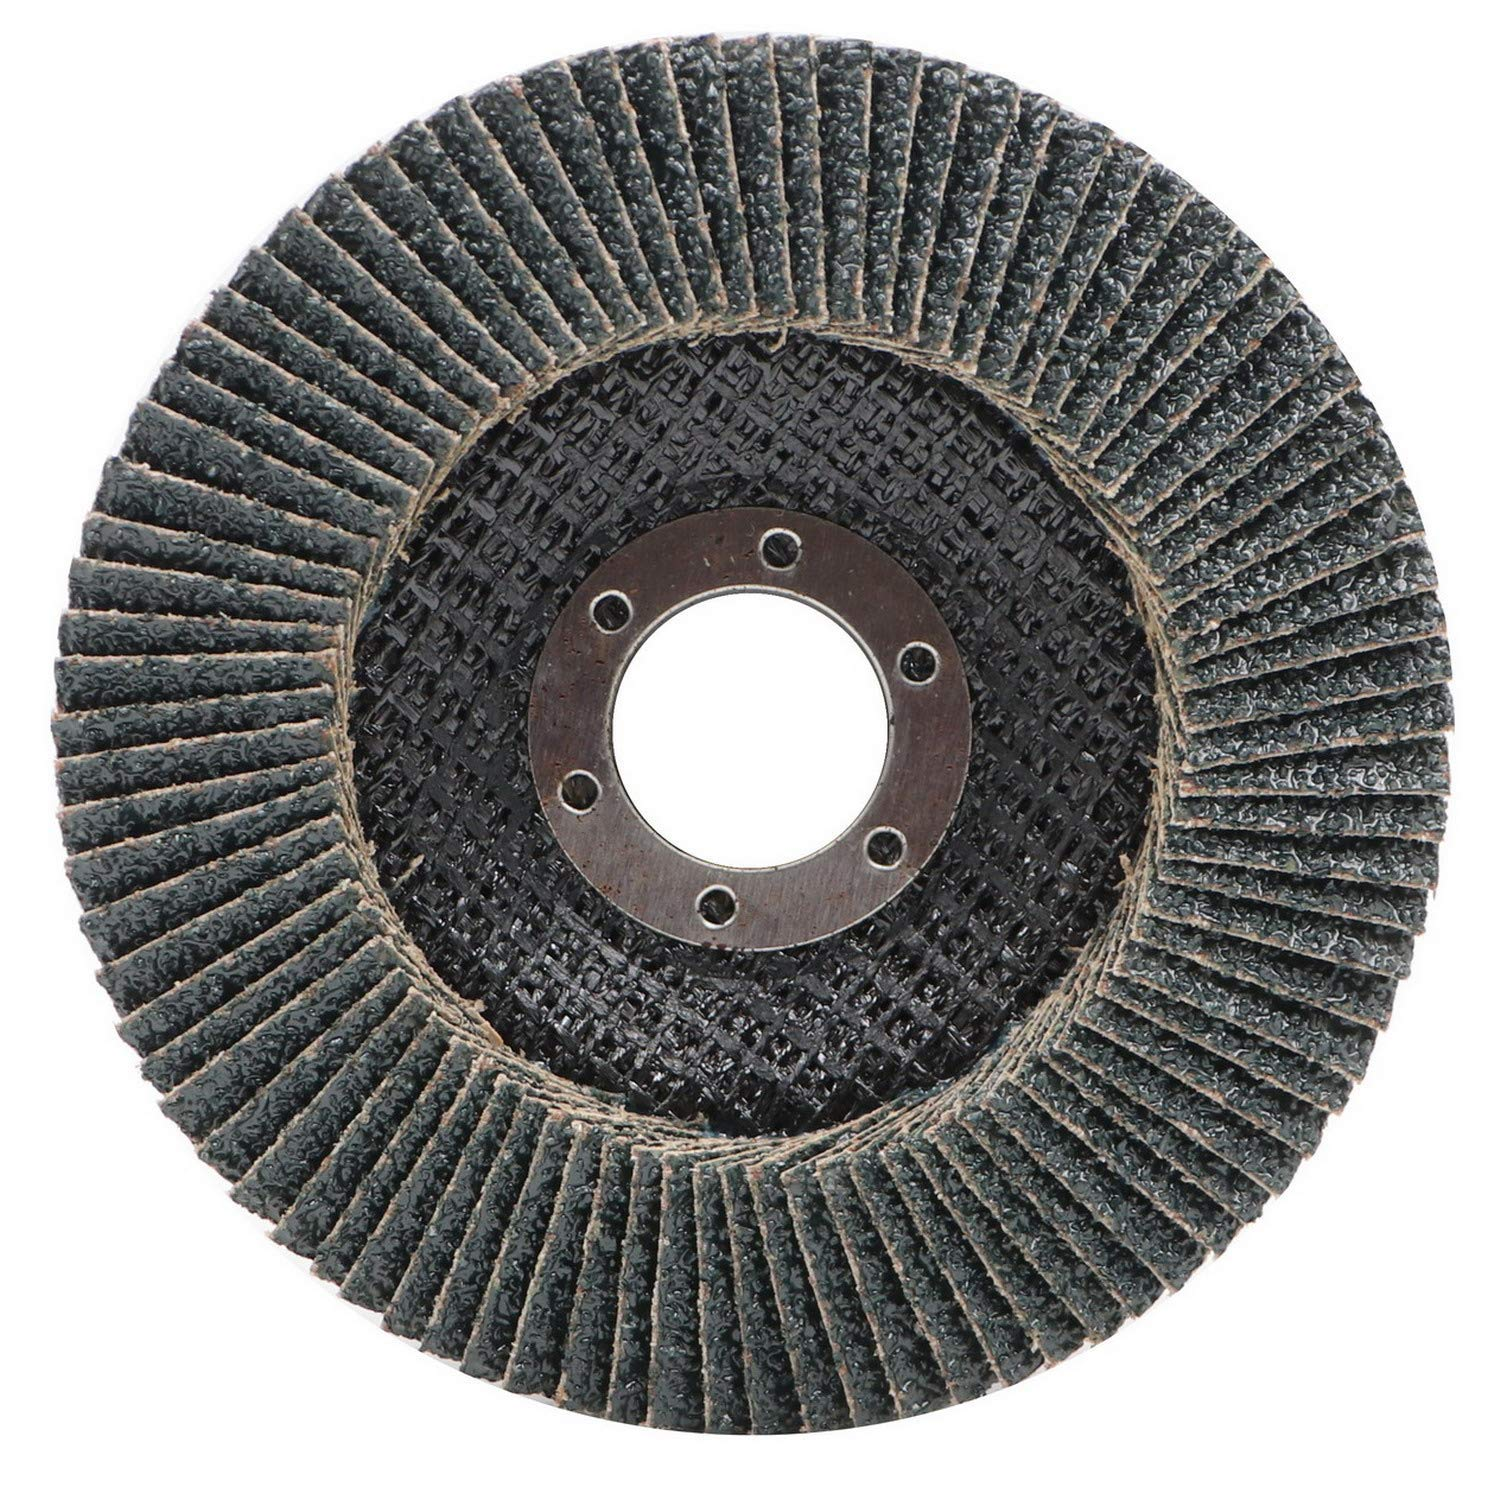 Eco Edge 4.5 x 7//8 Arbor High Density Deluxe Zirconia Abrasive Flap Disc 40 Grit Type 29 Pack of 10